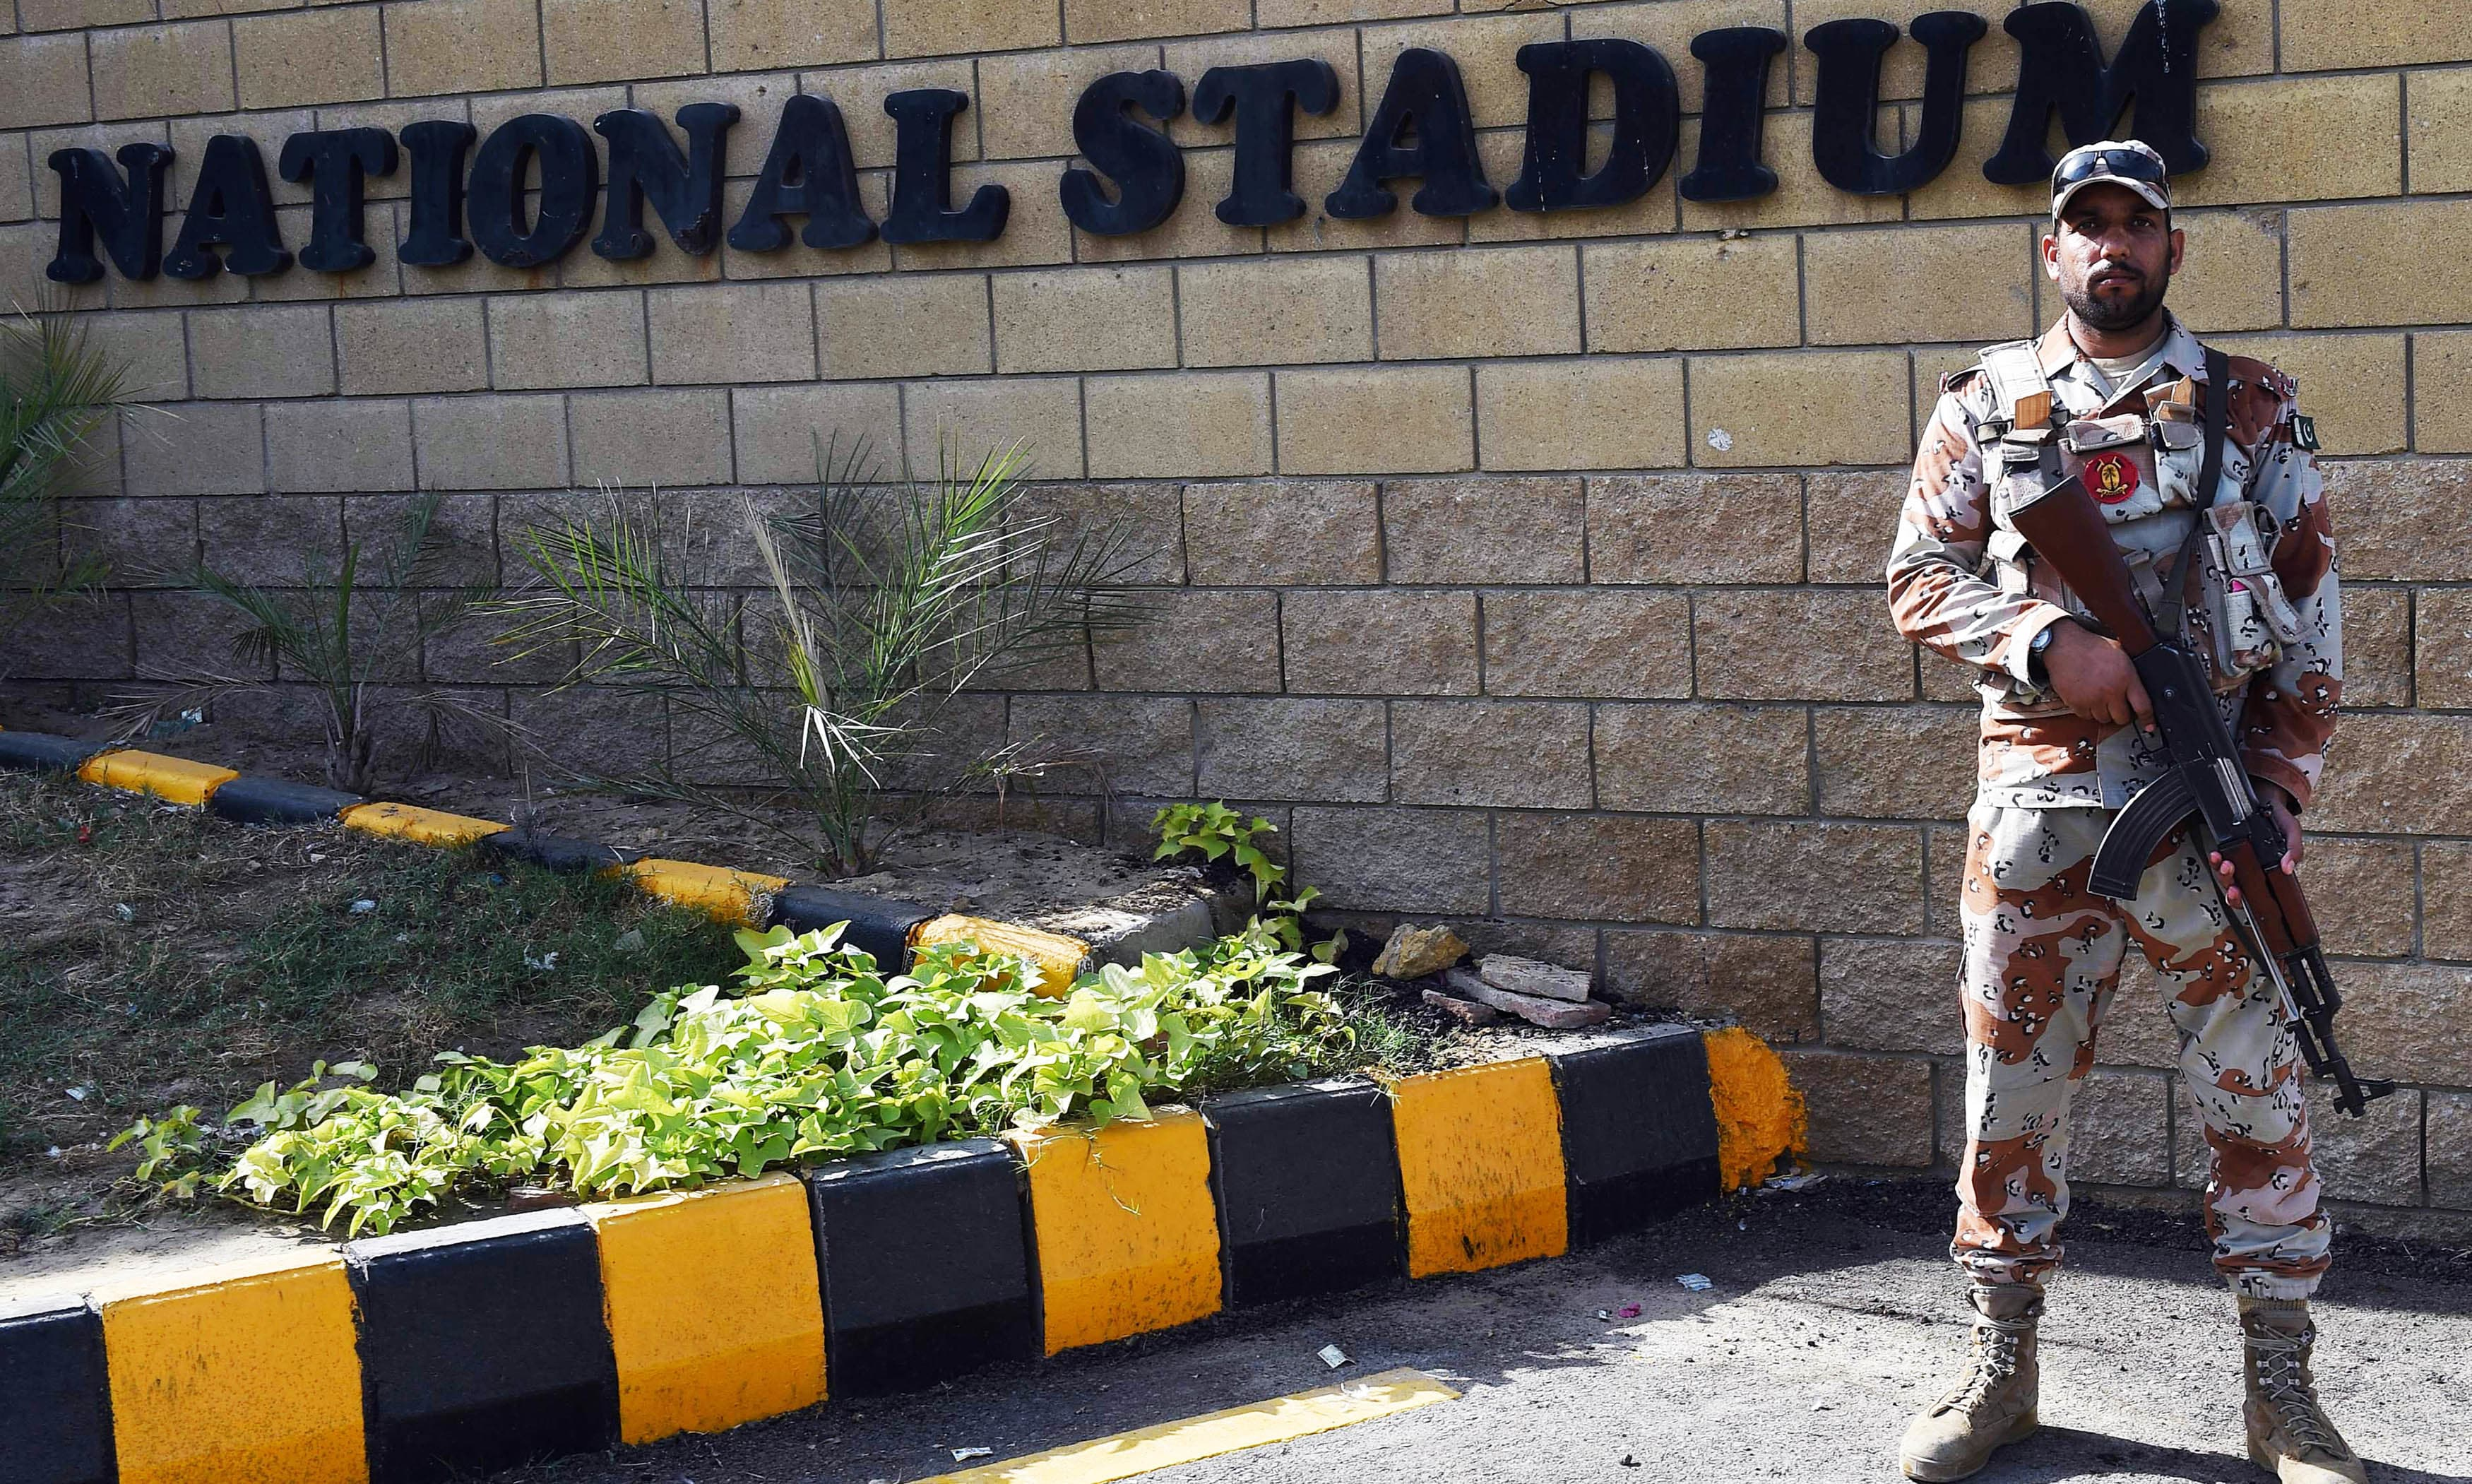 Rangers stands guard outside the National Cricket Stadium. —AFP